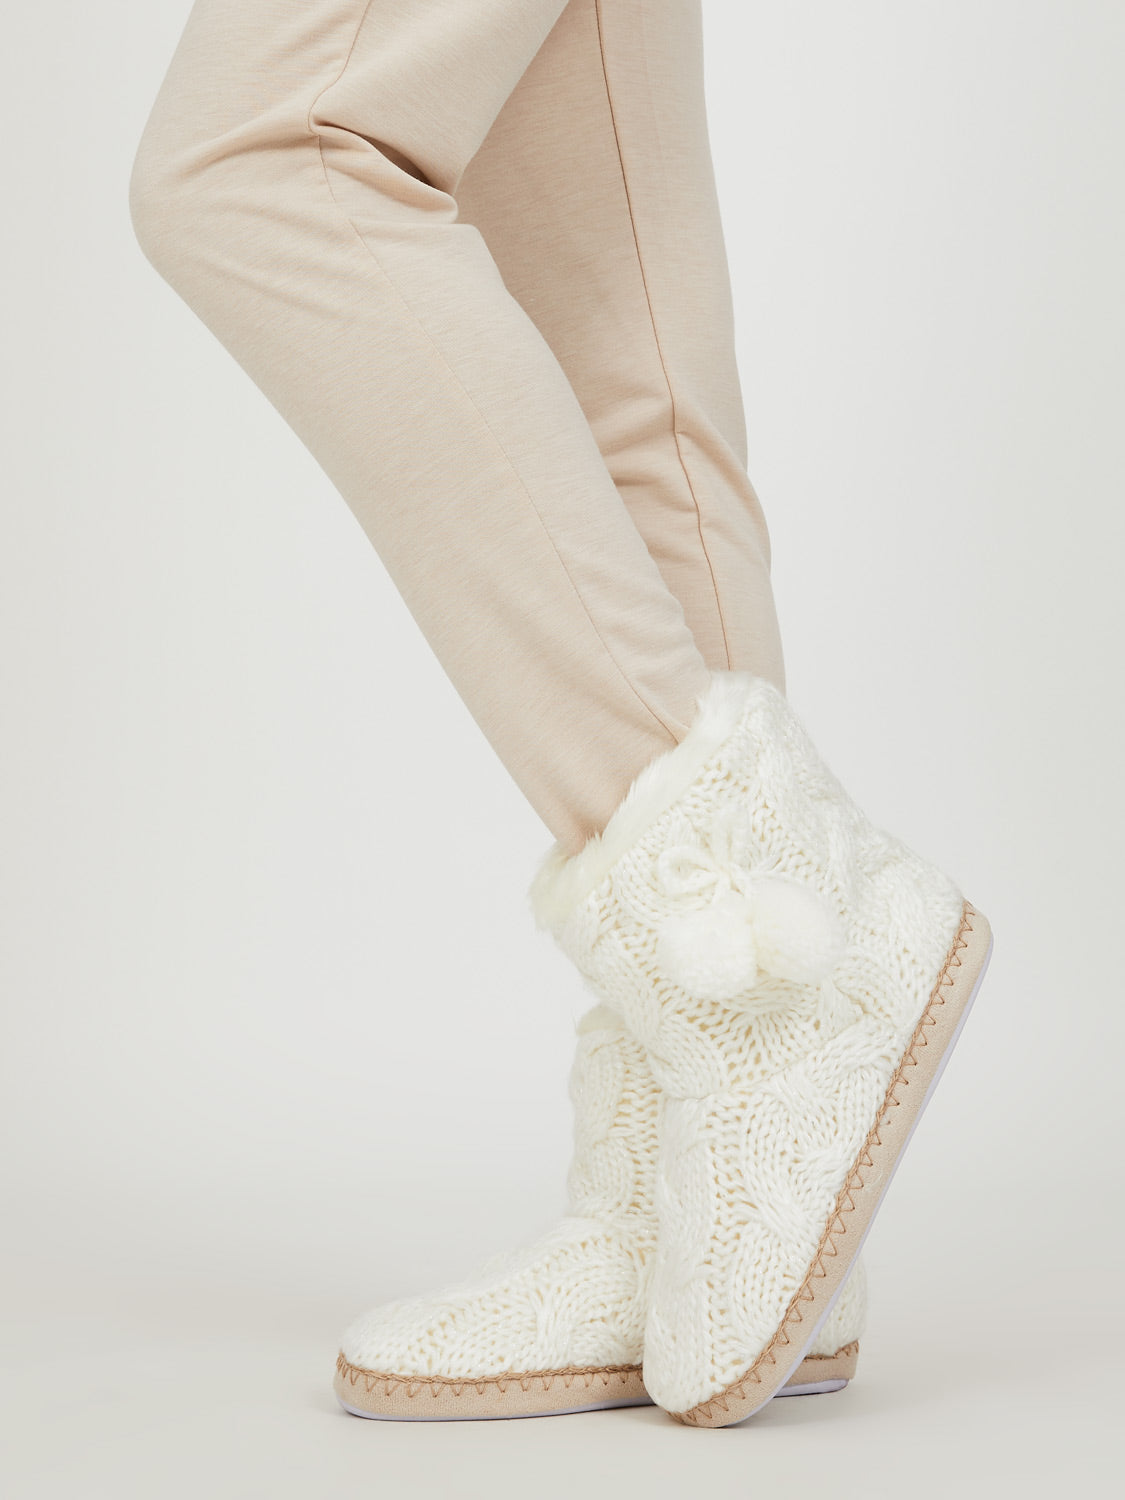 Metallic Knit Pom Pom Bootie Slippers